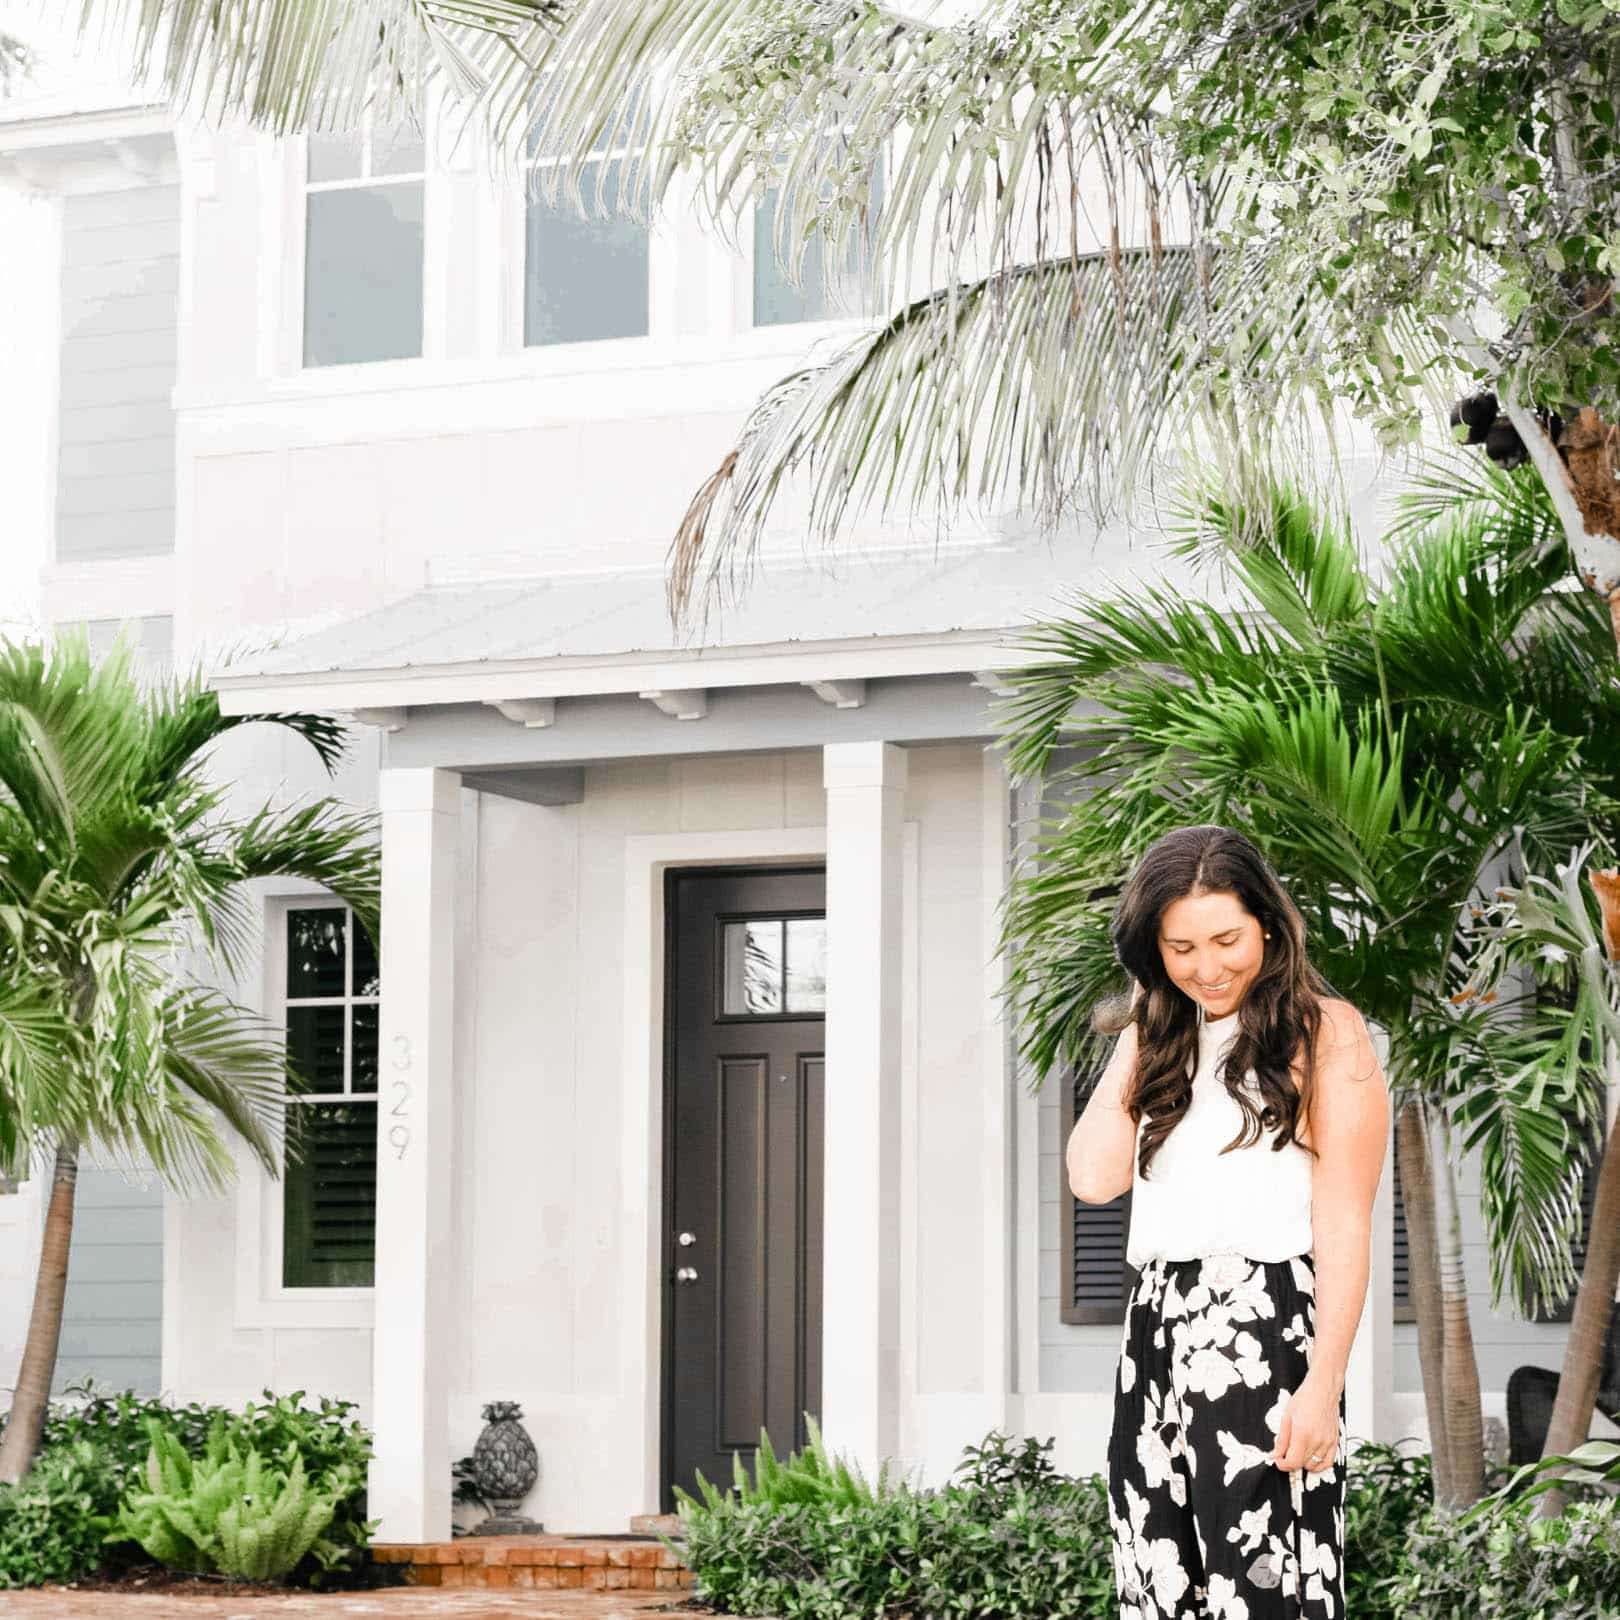 how to save money for your first home purchase, buying first home in 20s with bad credit, tips for buying a house for the first time with bad credit, check lists of things to do with your money and down payment and finances when looking to become a new home owner, questions to get prepared for the timeline and home purchasing process, #firsthome, #homebuying, #moneytips, #firsthouse, #homeowner, #badcredit